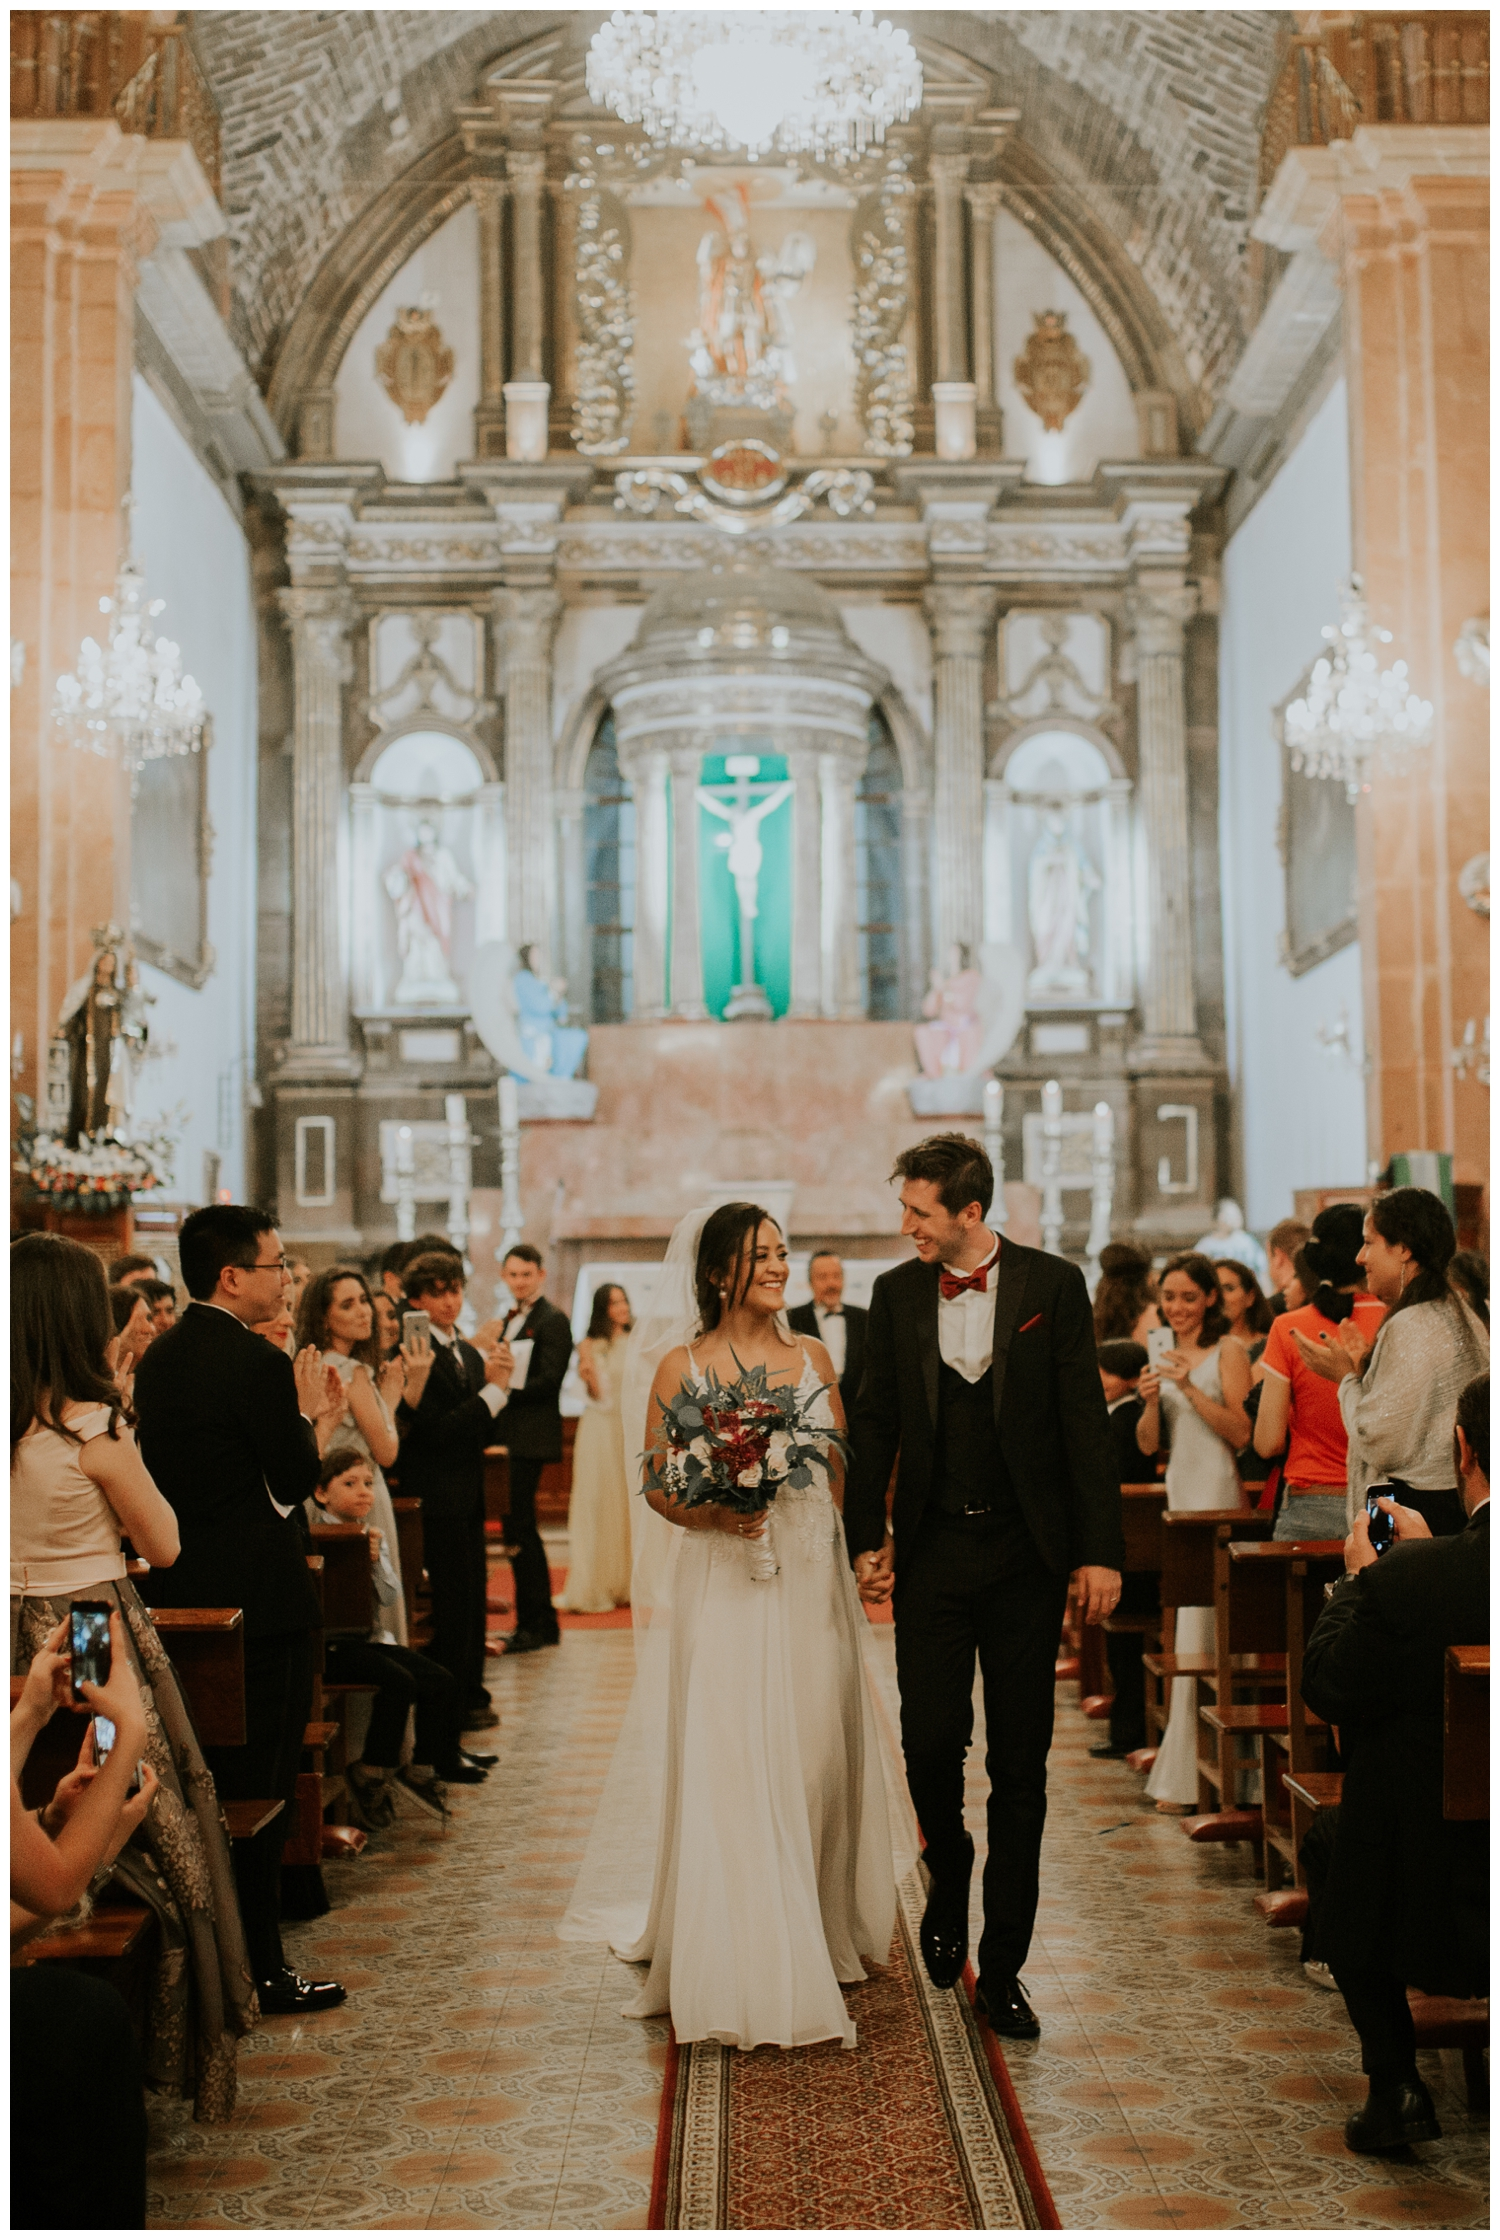 Shane+Sofia, San Miguel de Allende Wedding, Mexico Wedding, Contista Productions Wedding Photography_0099.jpg